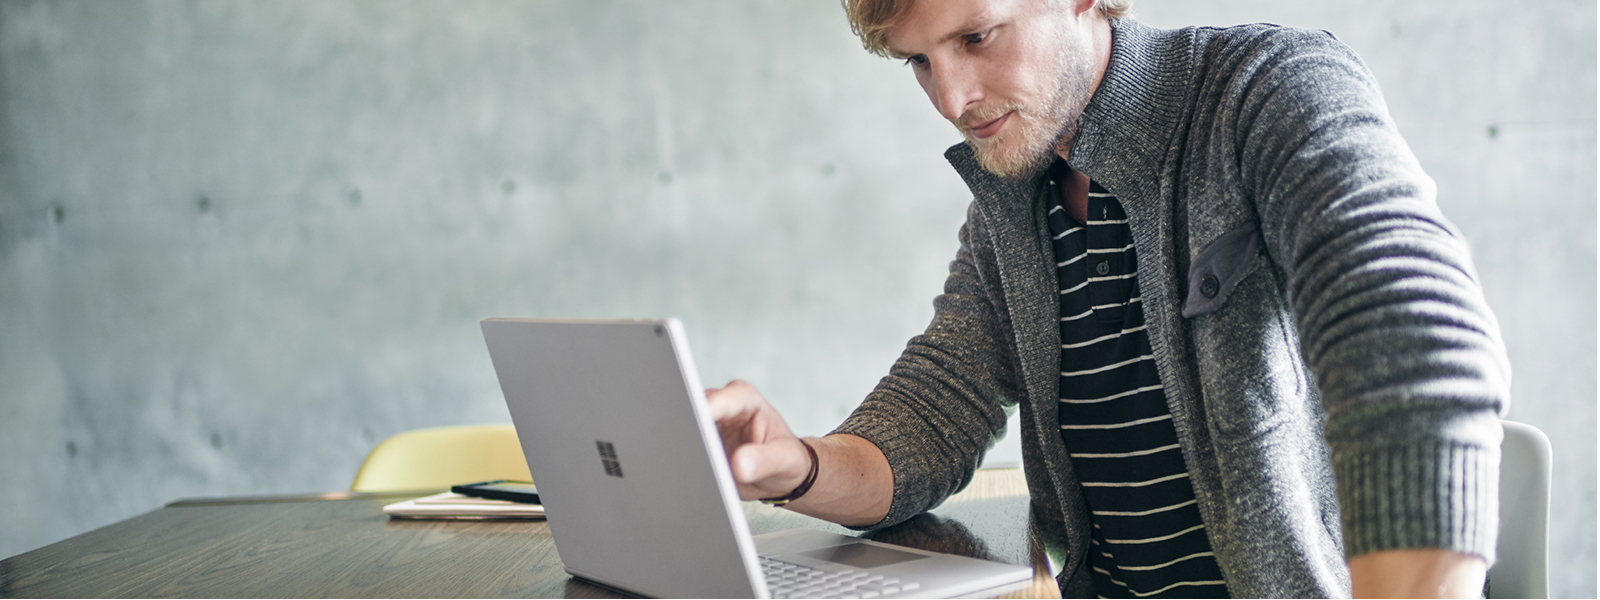 Man uses touchscreen on Surface Book.